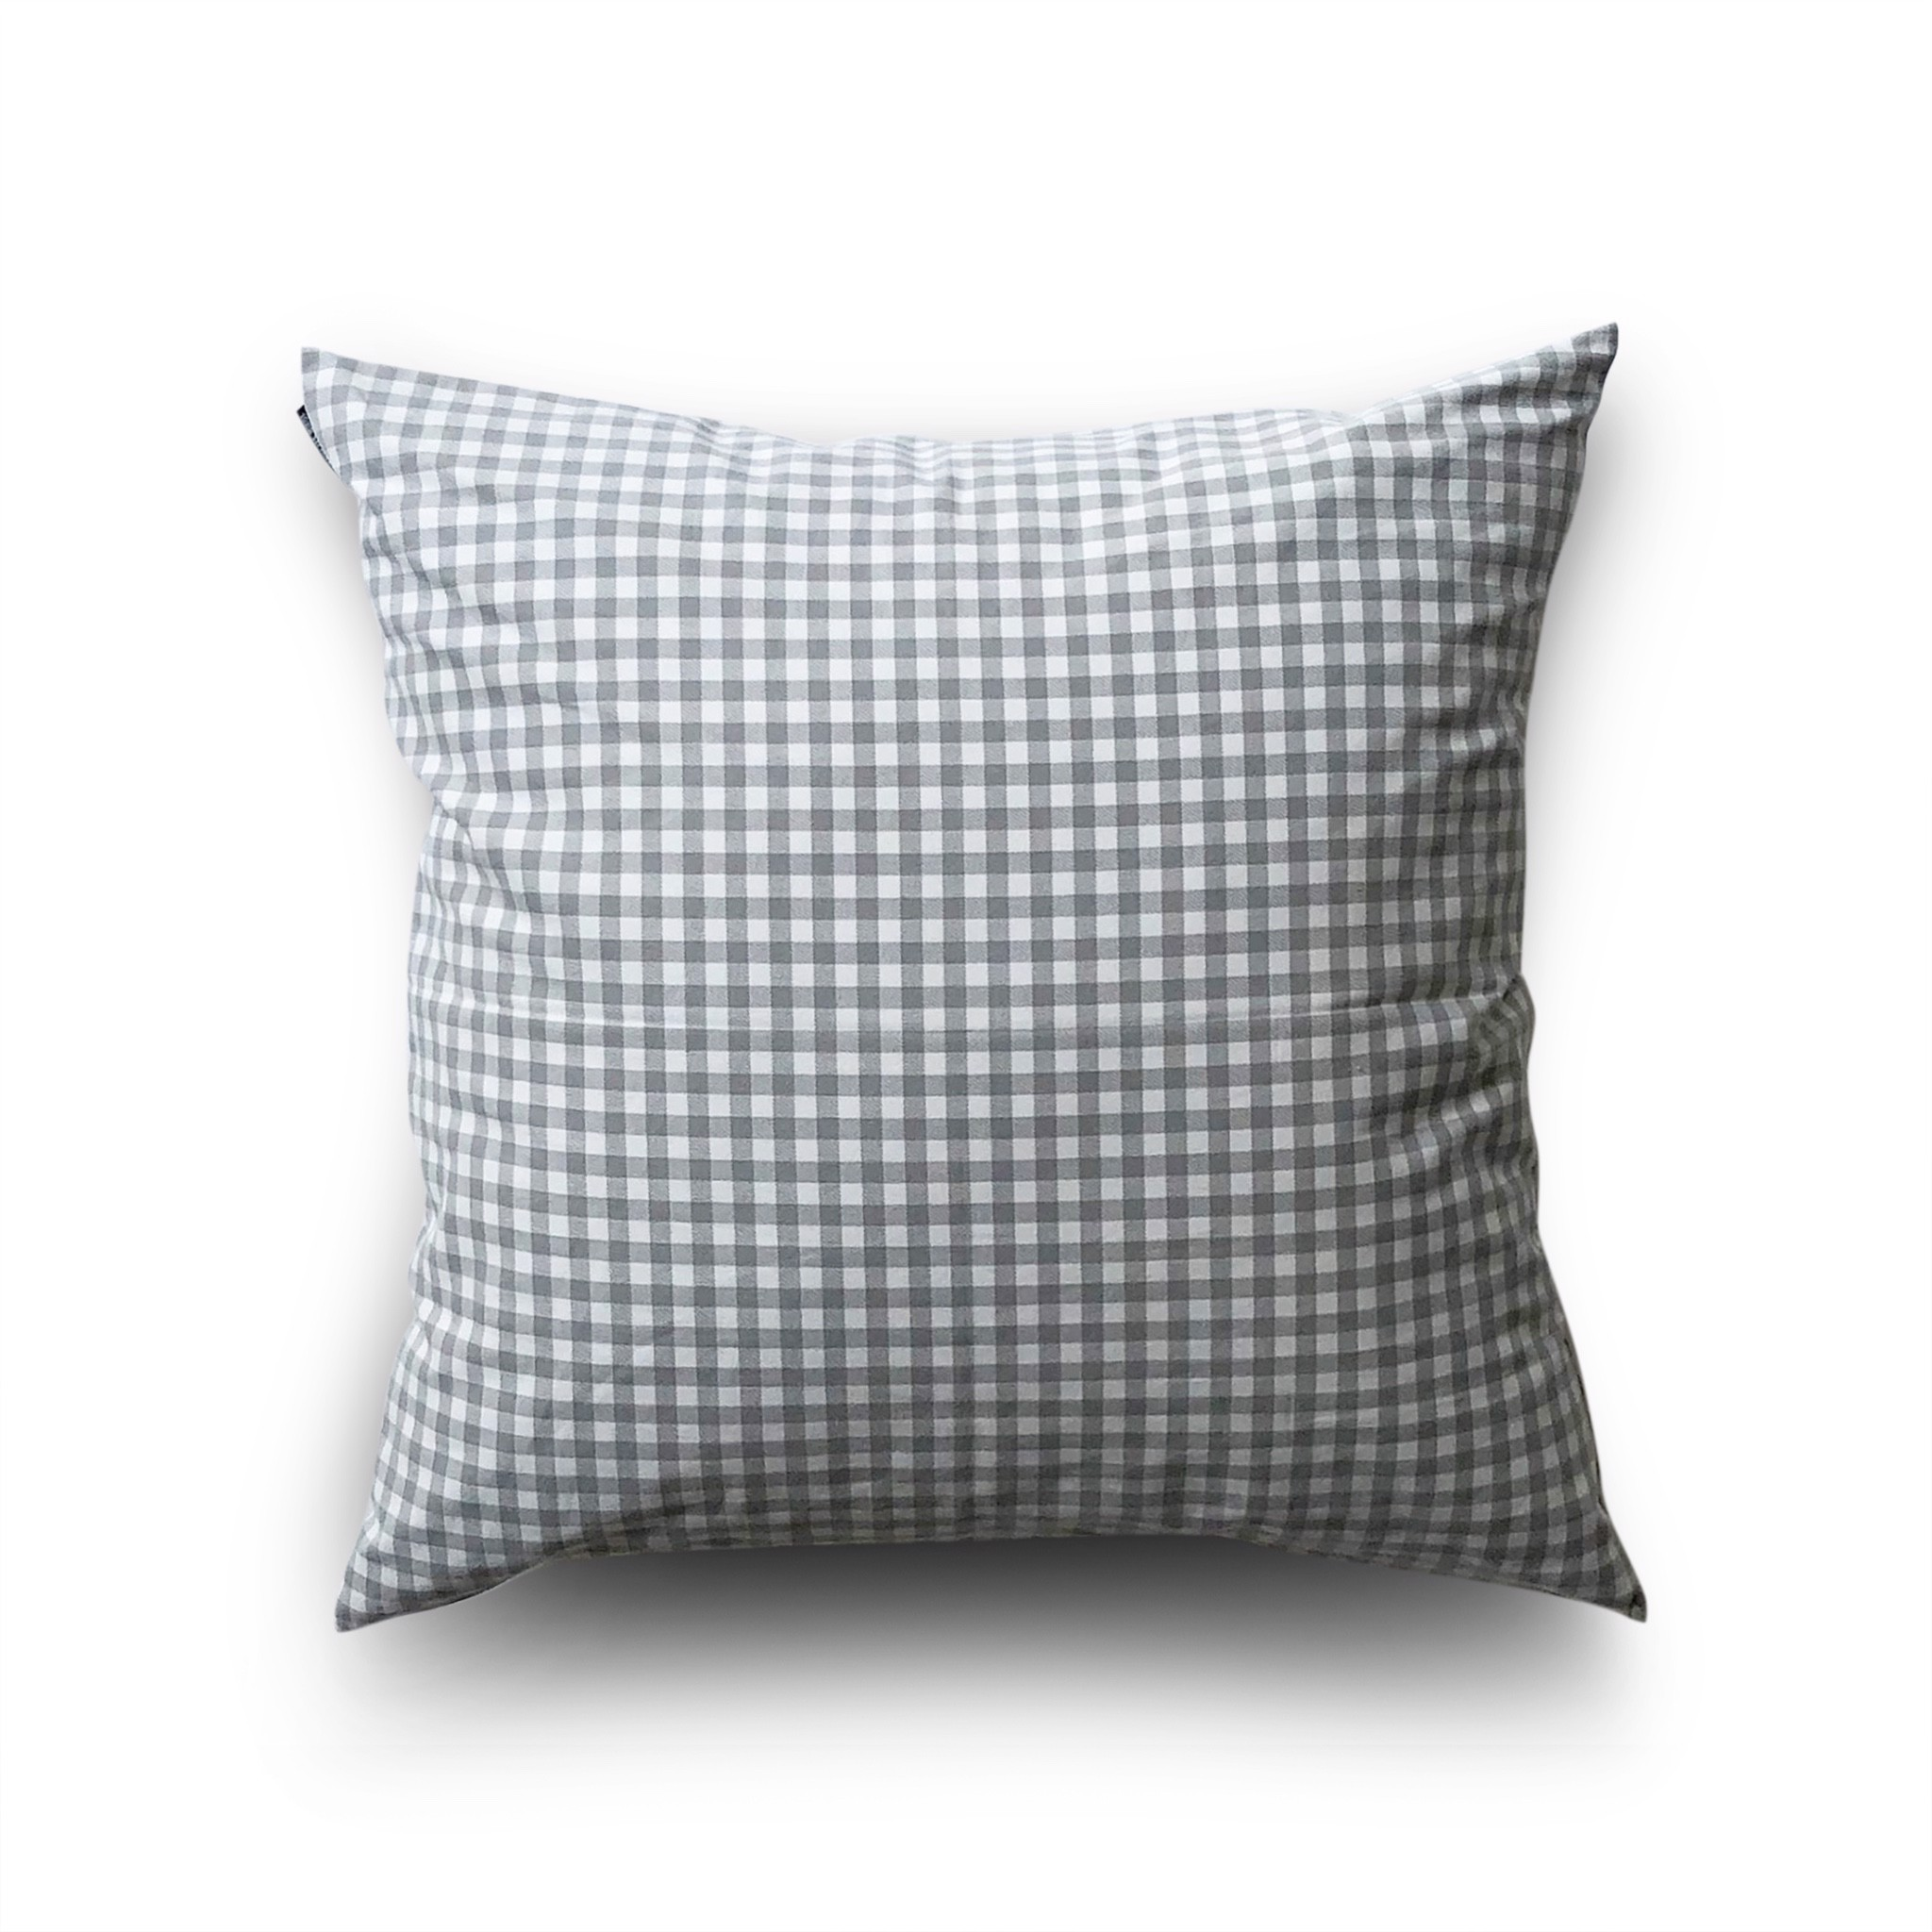 Cushion cover 21 Grey white grid